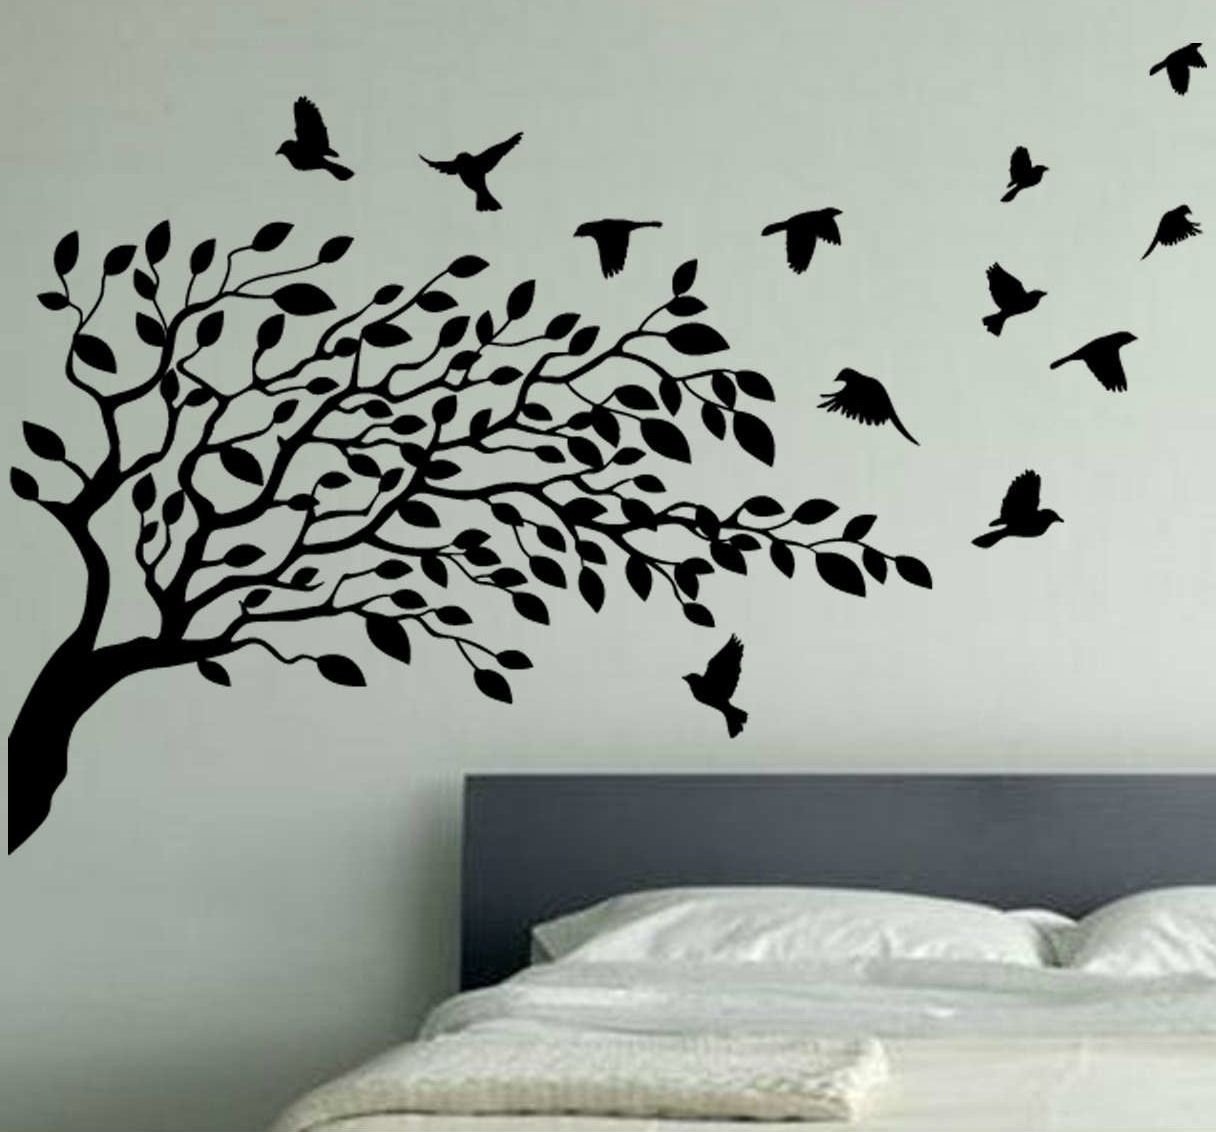 Wallpaper wall decals stickers art vinyl removable birdcage bird wallpaper wall decals stickers art vinyl removable birdcage bird tree bird wallpaper stickers amipublicfo Choice Image